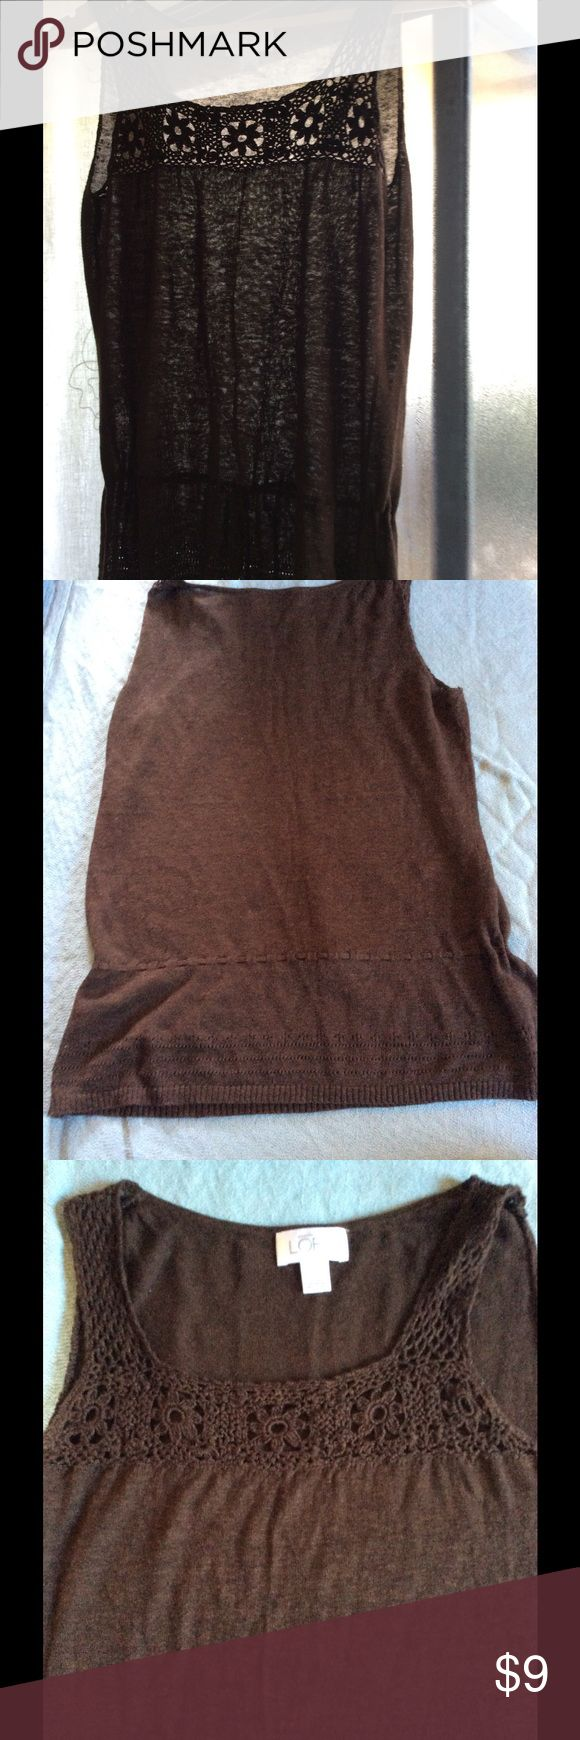 Anne Taylor Loft Brown Sleeveless Sweater Classy dark brown sleeveless sweater with tie front. Gently worn and waiting to the right pants, jeans or skirts to hang out with. 55% Linen 45% Viscose. anne taylor loft Sweaters